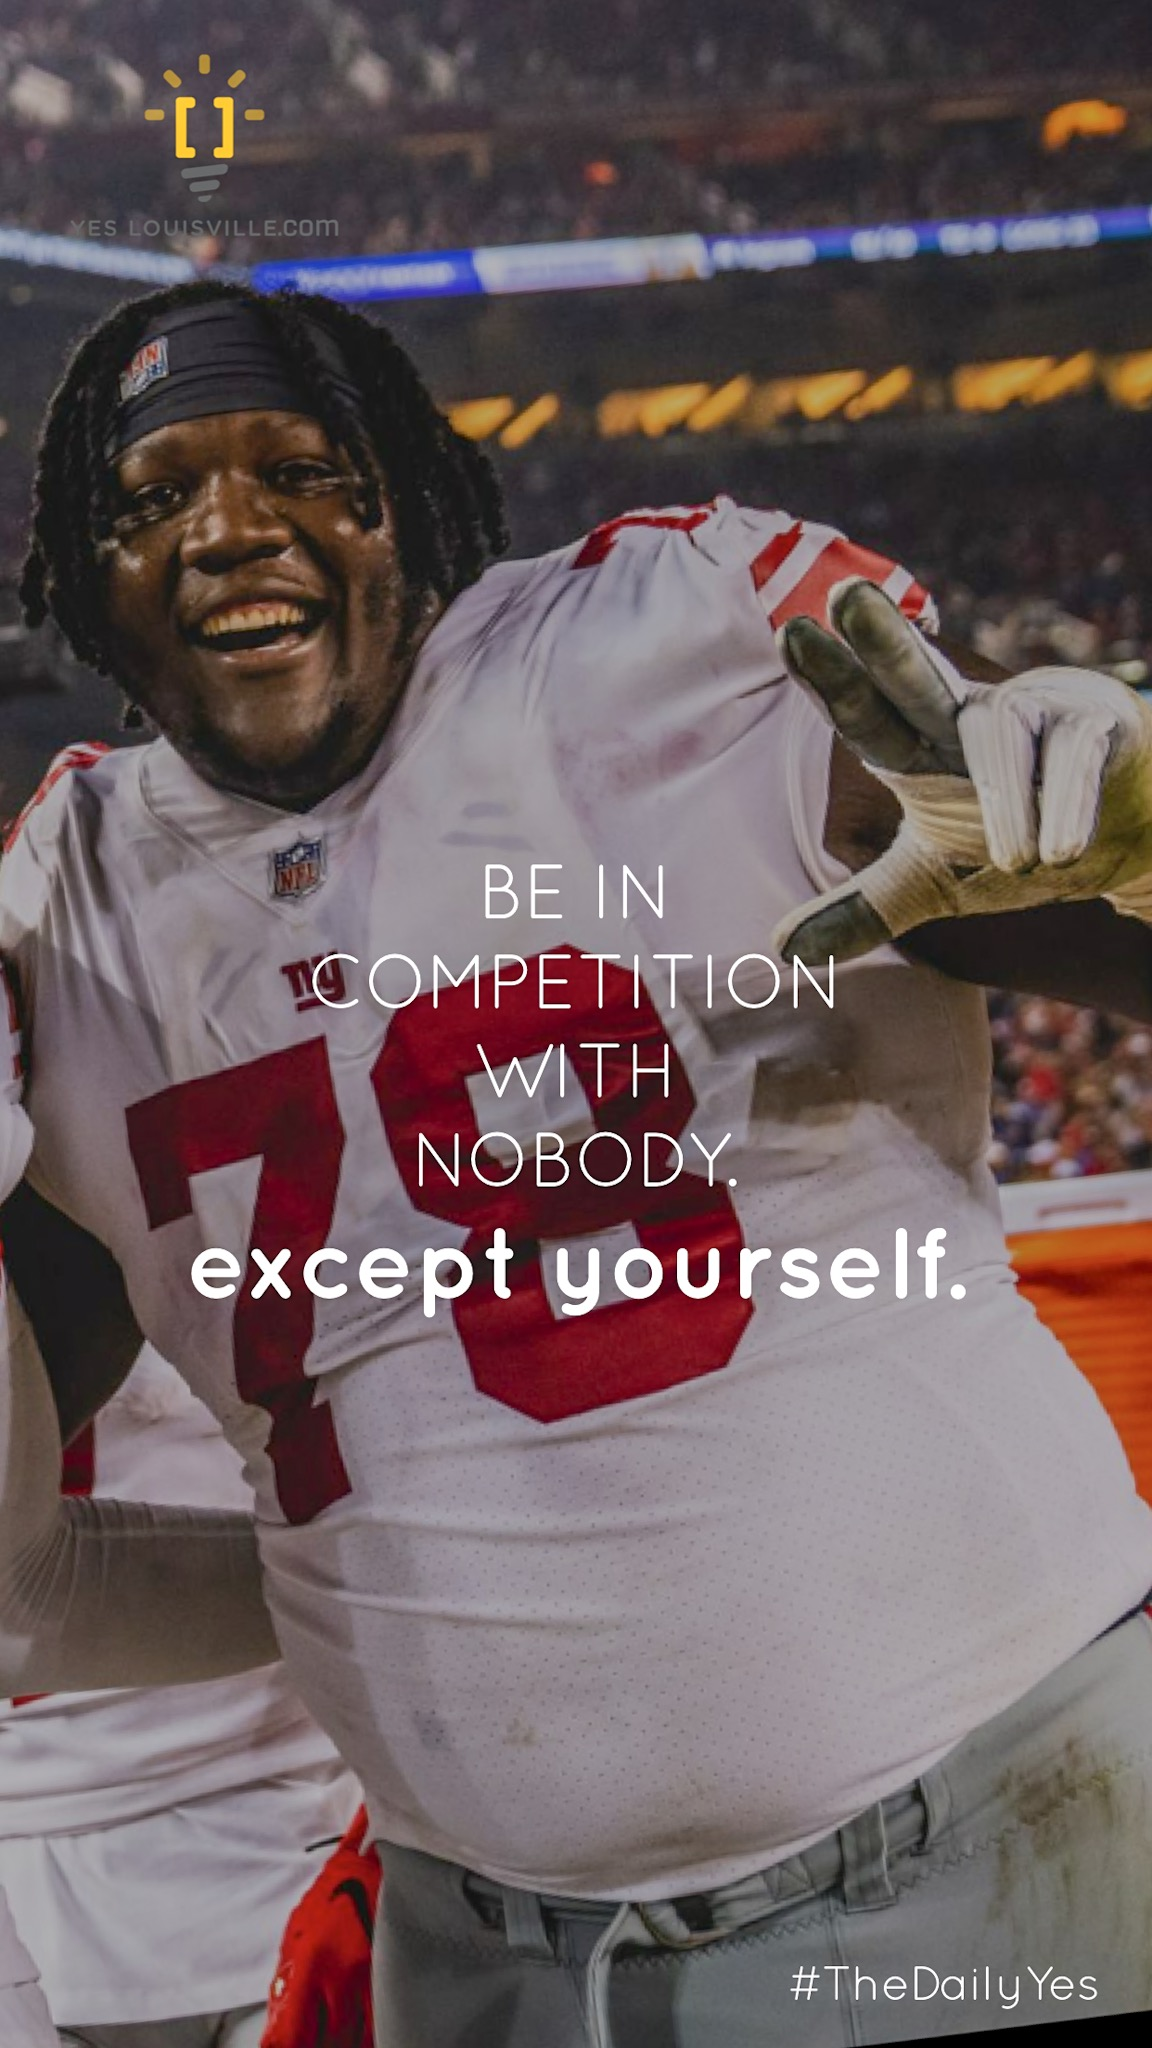 Save this image and use it as the background or lock screen on your phone AND share it on your Instagram story! Bookmark daily.yeslouisville.com jamon brown u of l New York Giants